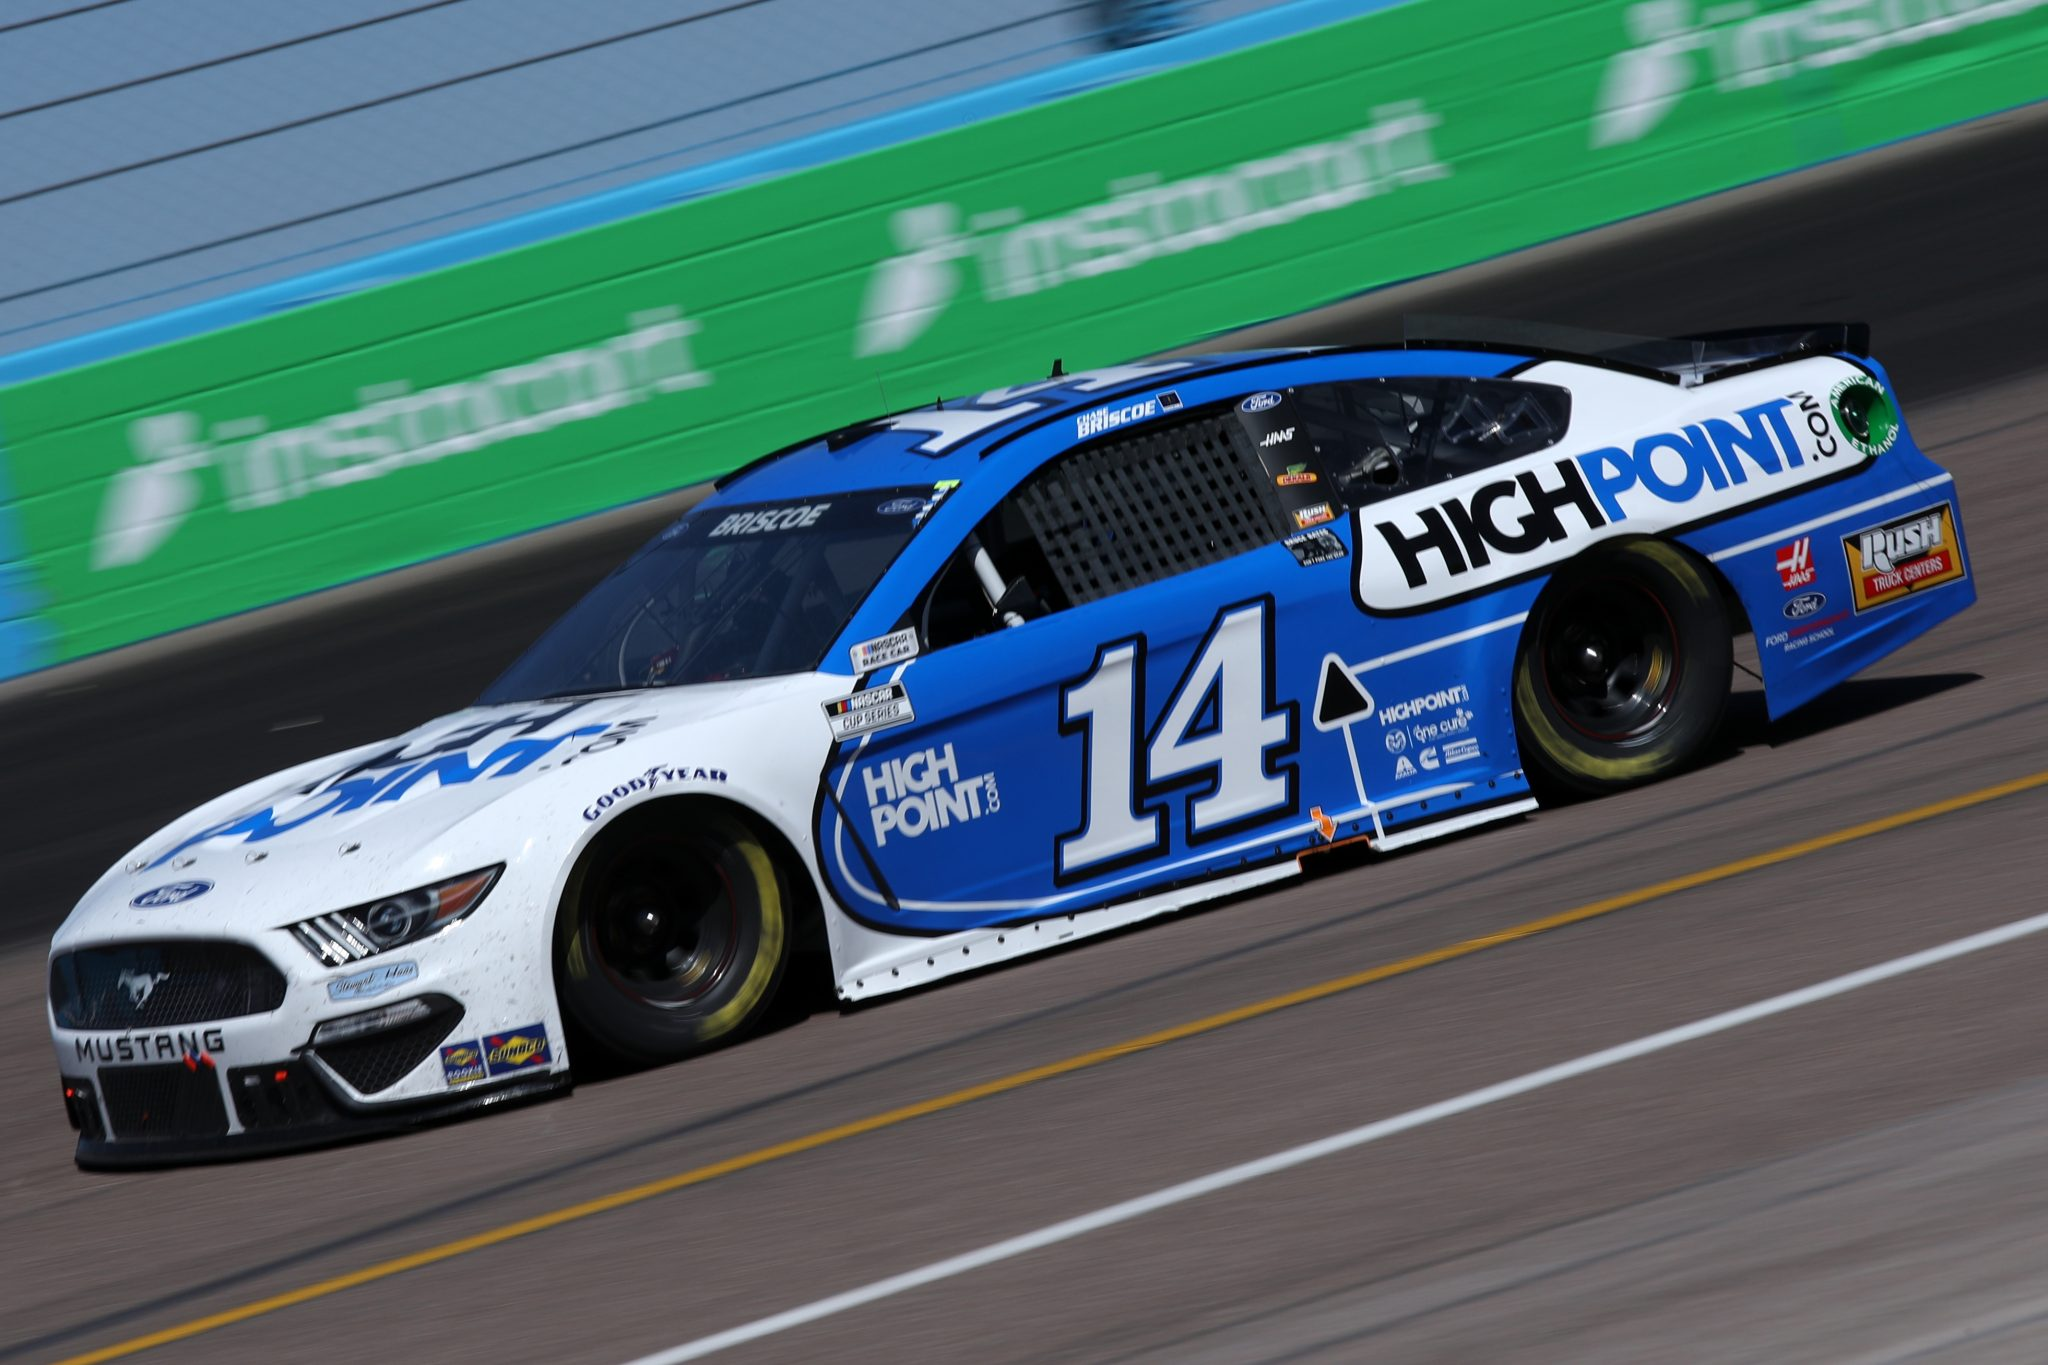 AVONDALE, ARIZONA - MARCH 14: Chase Briscoe, driver of the #14 HighPoint.com Ford, drives during the NASCAR Cup Series Instacart 500 at Phoenix Raceway on March 14, 2021 in Avondale, Arizona. (Photo by Sean Gardner/Getty Images) | Getty Images